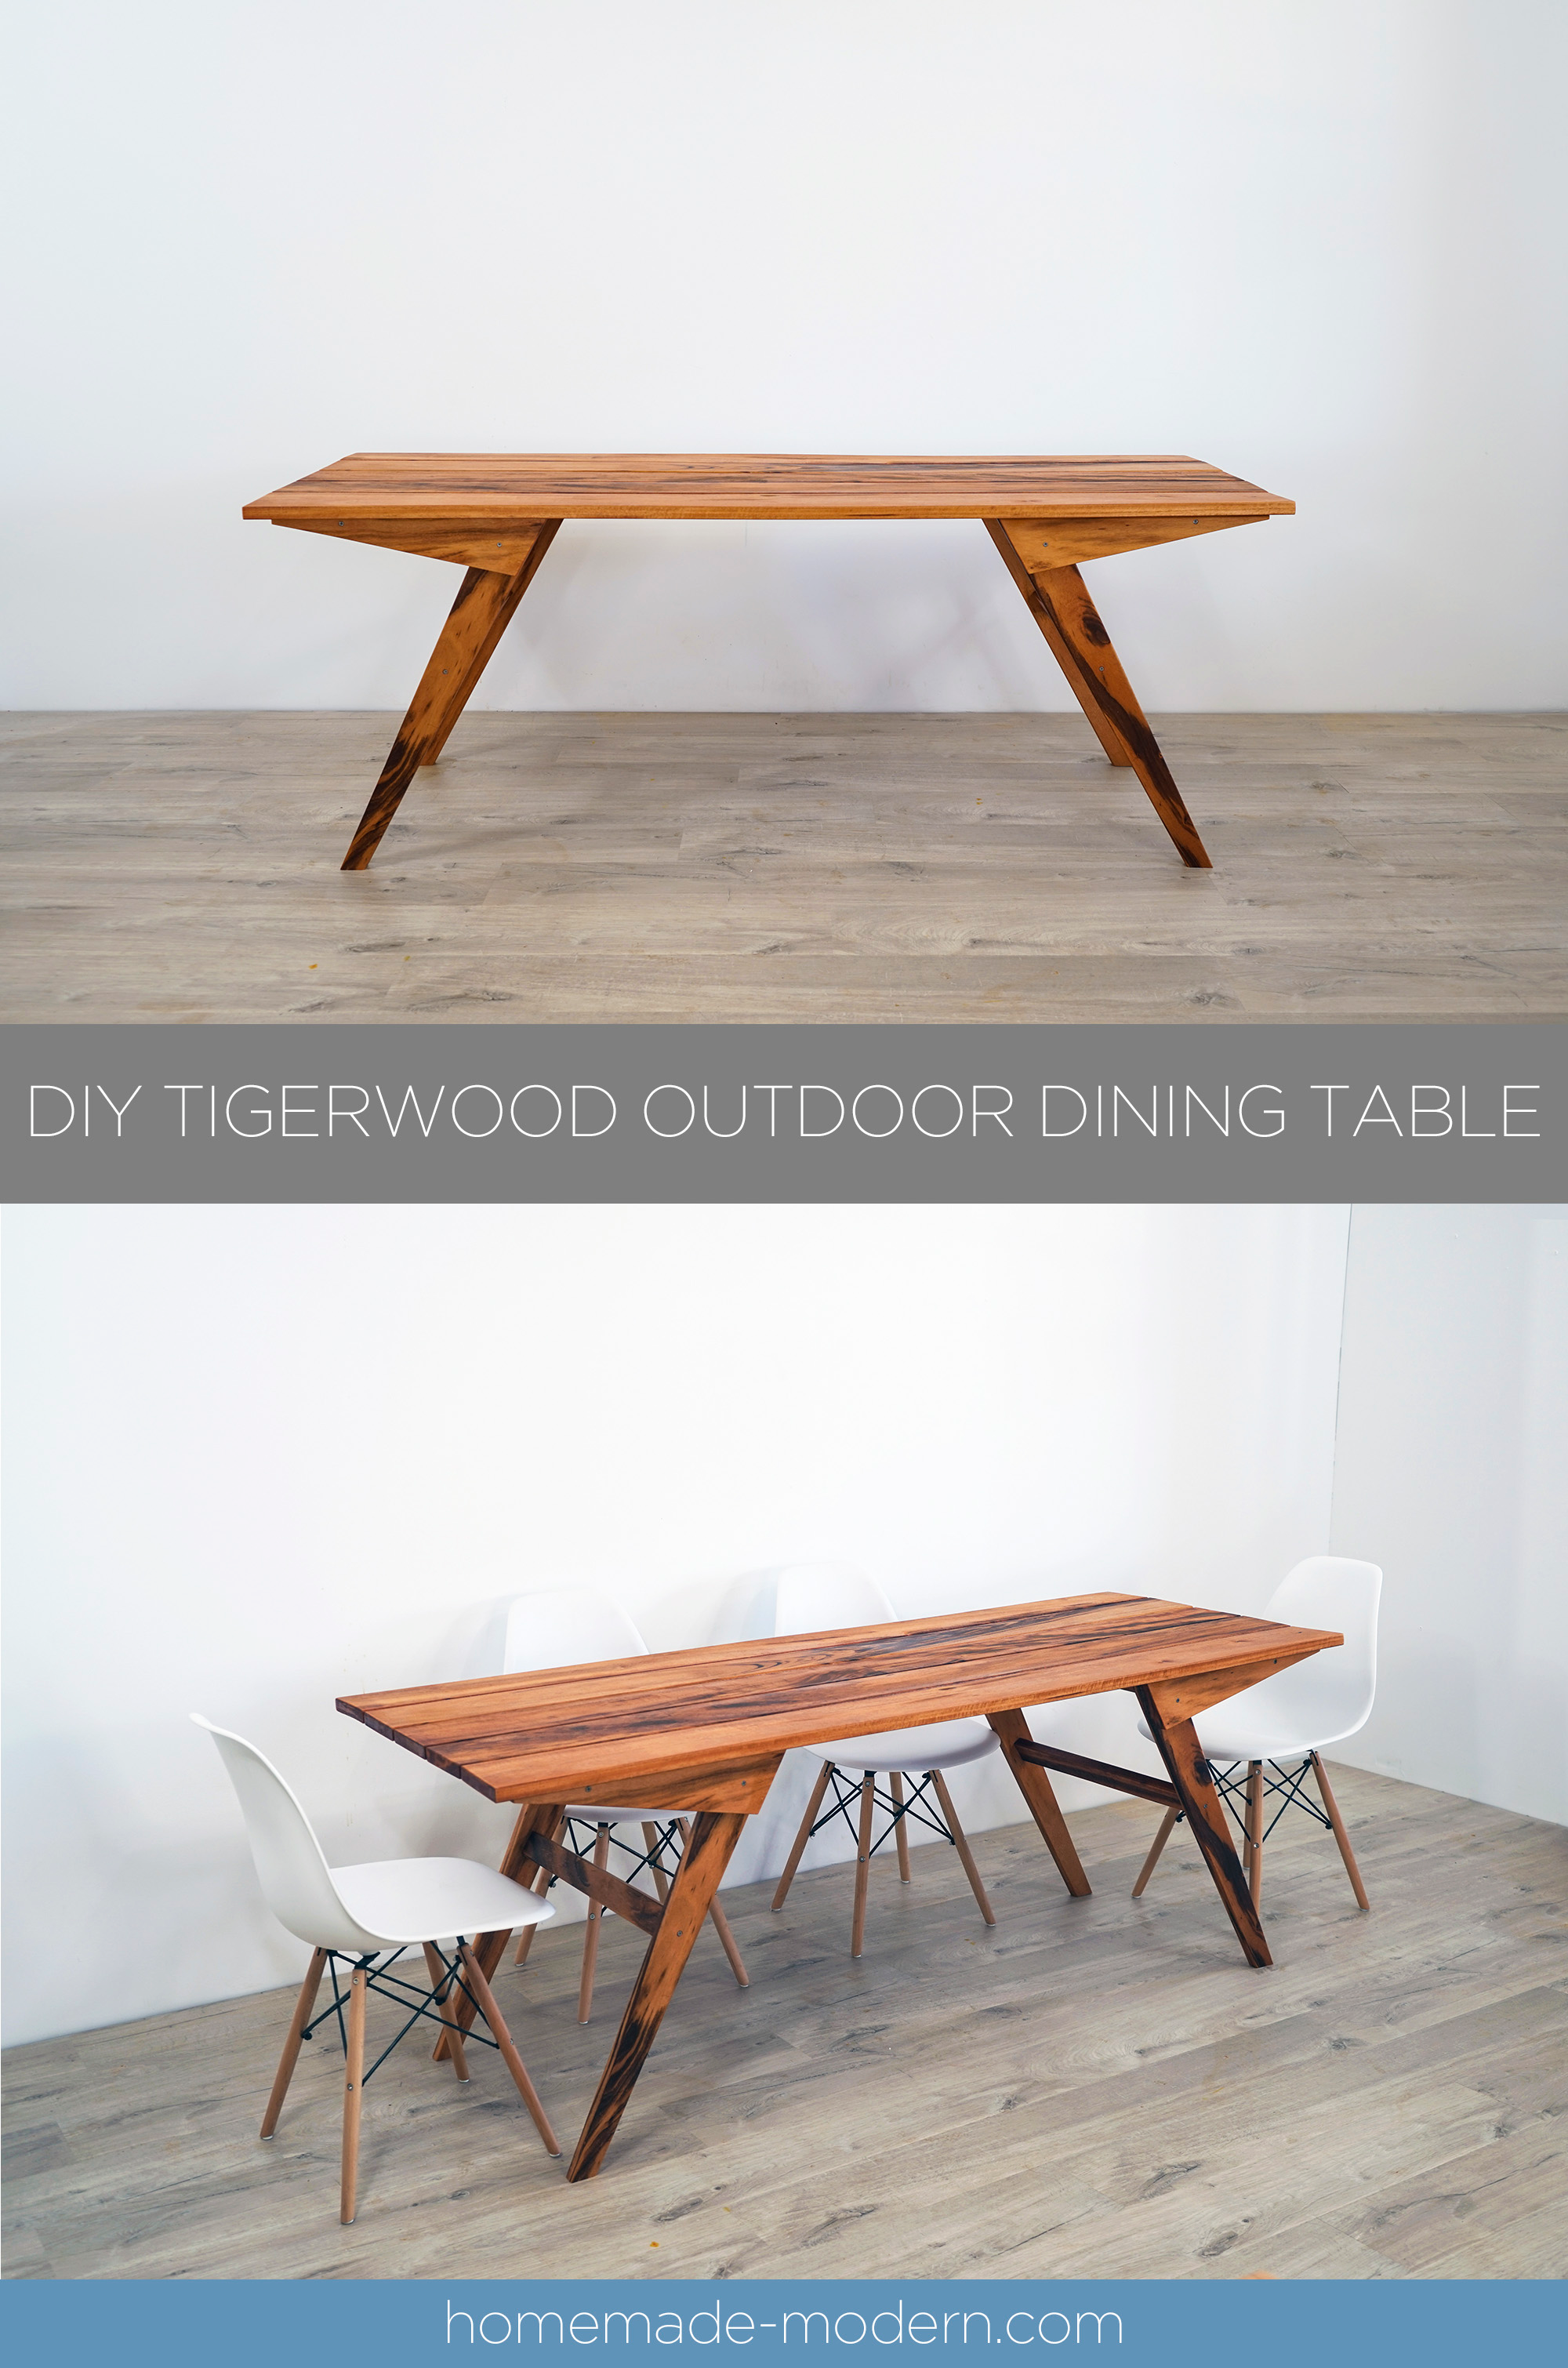 This Diy Outdoor Tigerwood Dining Table Can Be Made Using Just Three Power Tools For More In Outdoor Dining Table Diy Dining Table Modern Outdoor Dining Table [ 3020 x 2000 Pixel ]